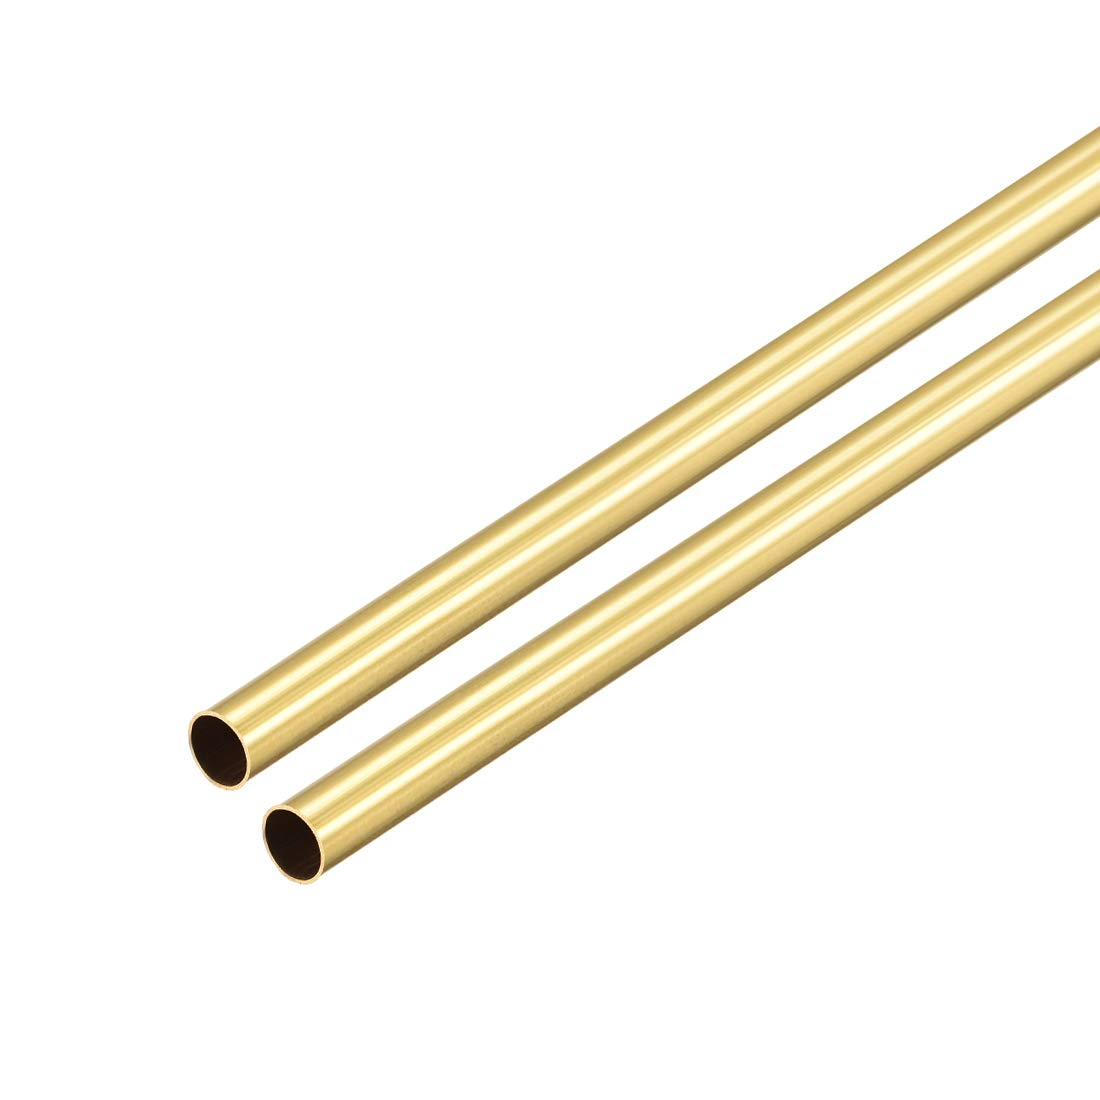 uxcell Brass Round Tube 300mm Length 4mm OD 0.2mm Wall Thickness Seamless Straight Pipe Tubing 2 Pcs